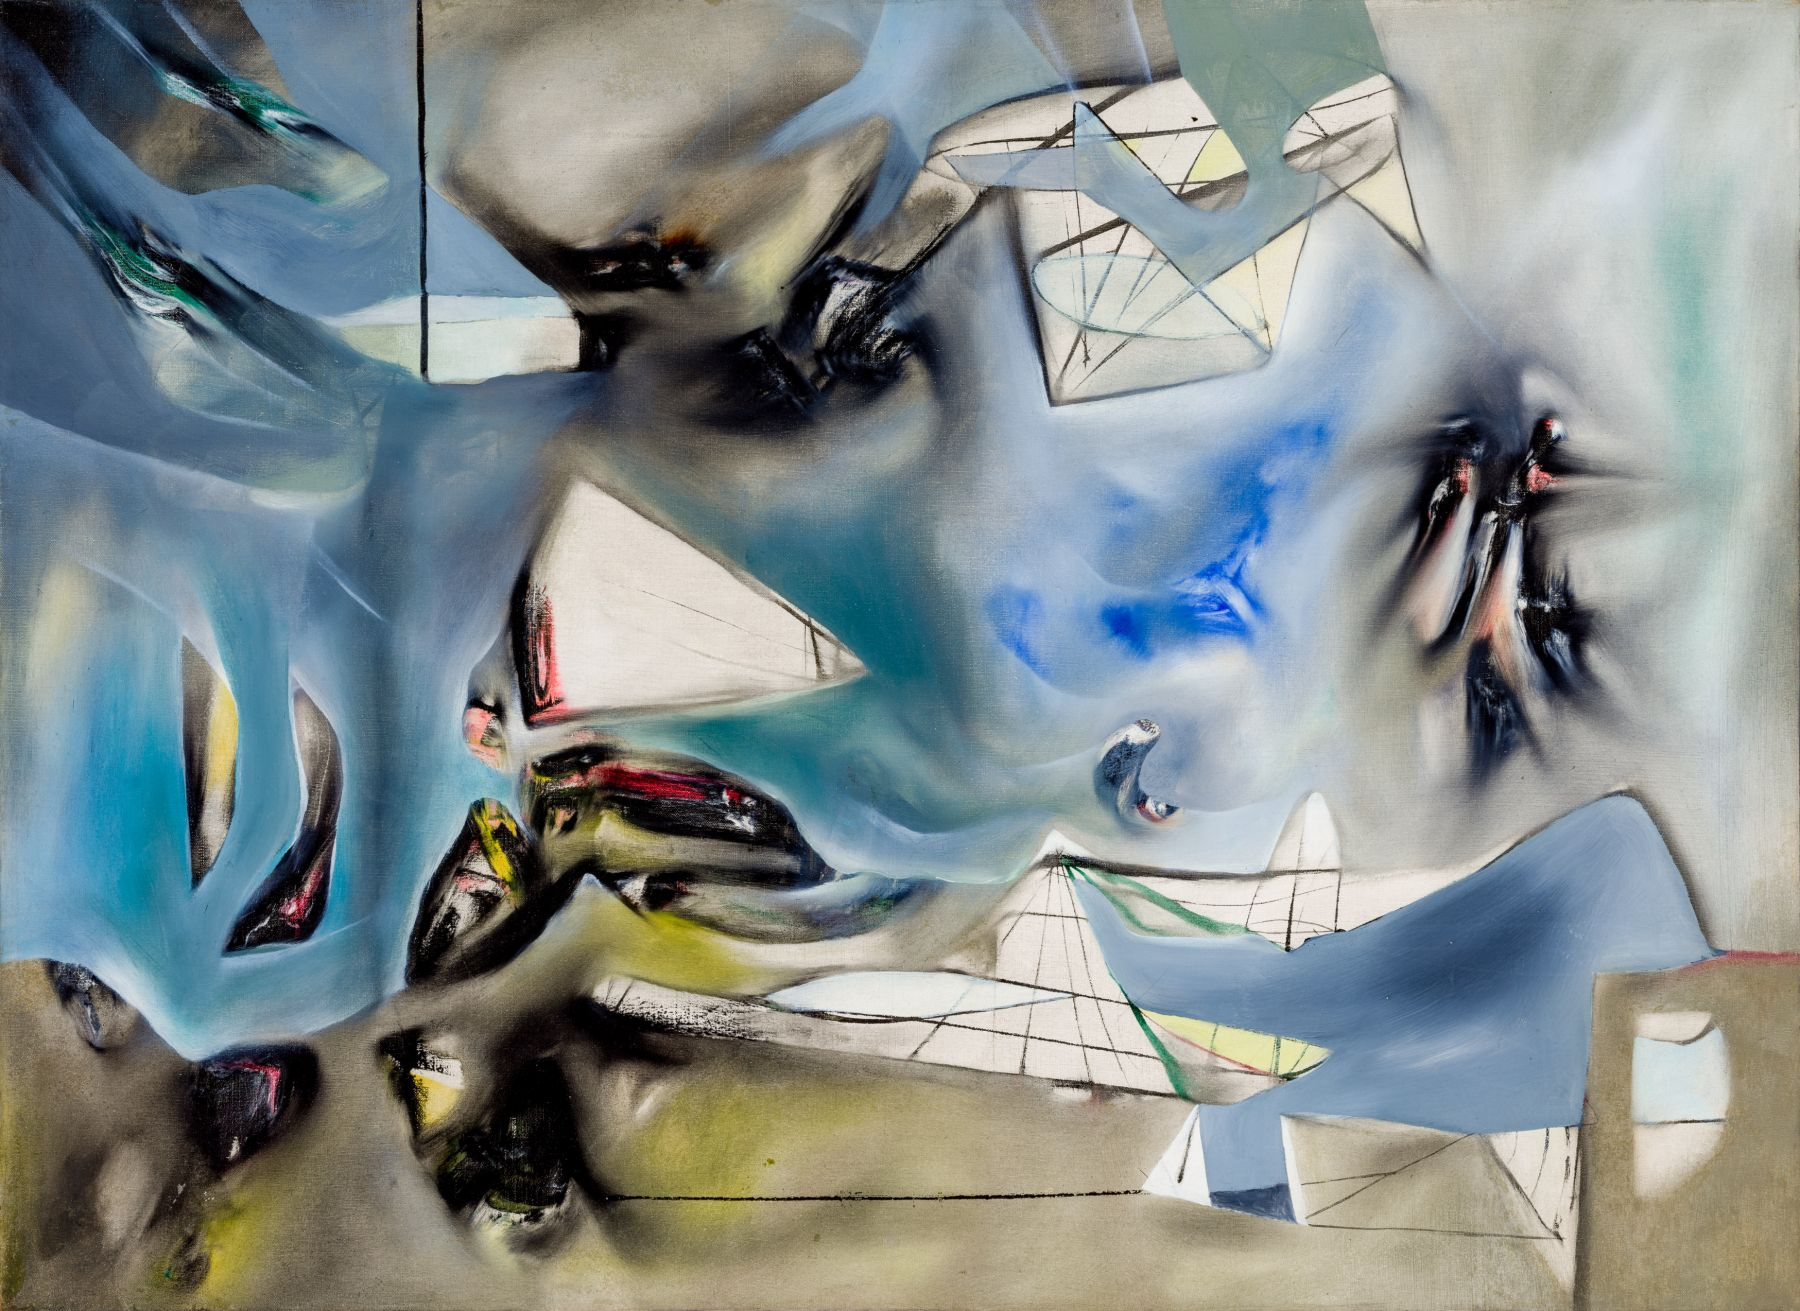 Matta. Centro del agua (Center of Water). 1941. Oil on canvas, 54.7 by 74.5 cm (21½ by 29⅜ in.). © 2019 Artists Rights Society (ARS), New York / ADAGP, Paris